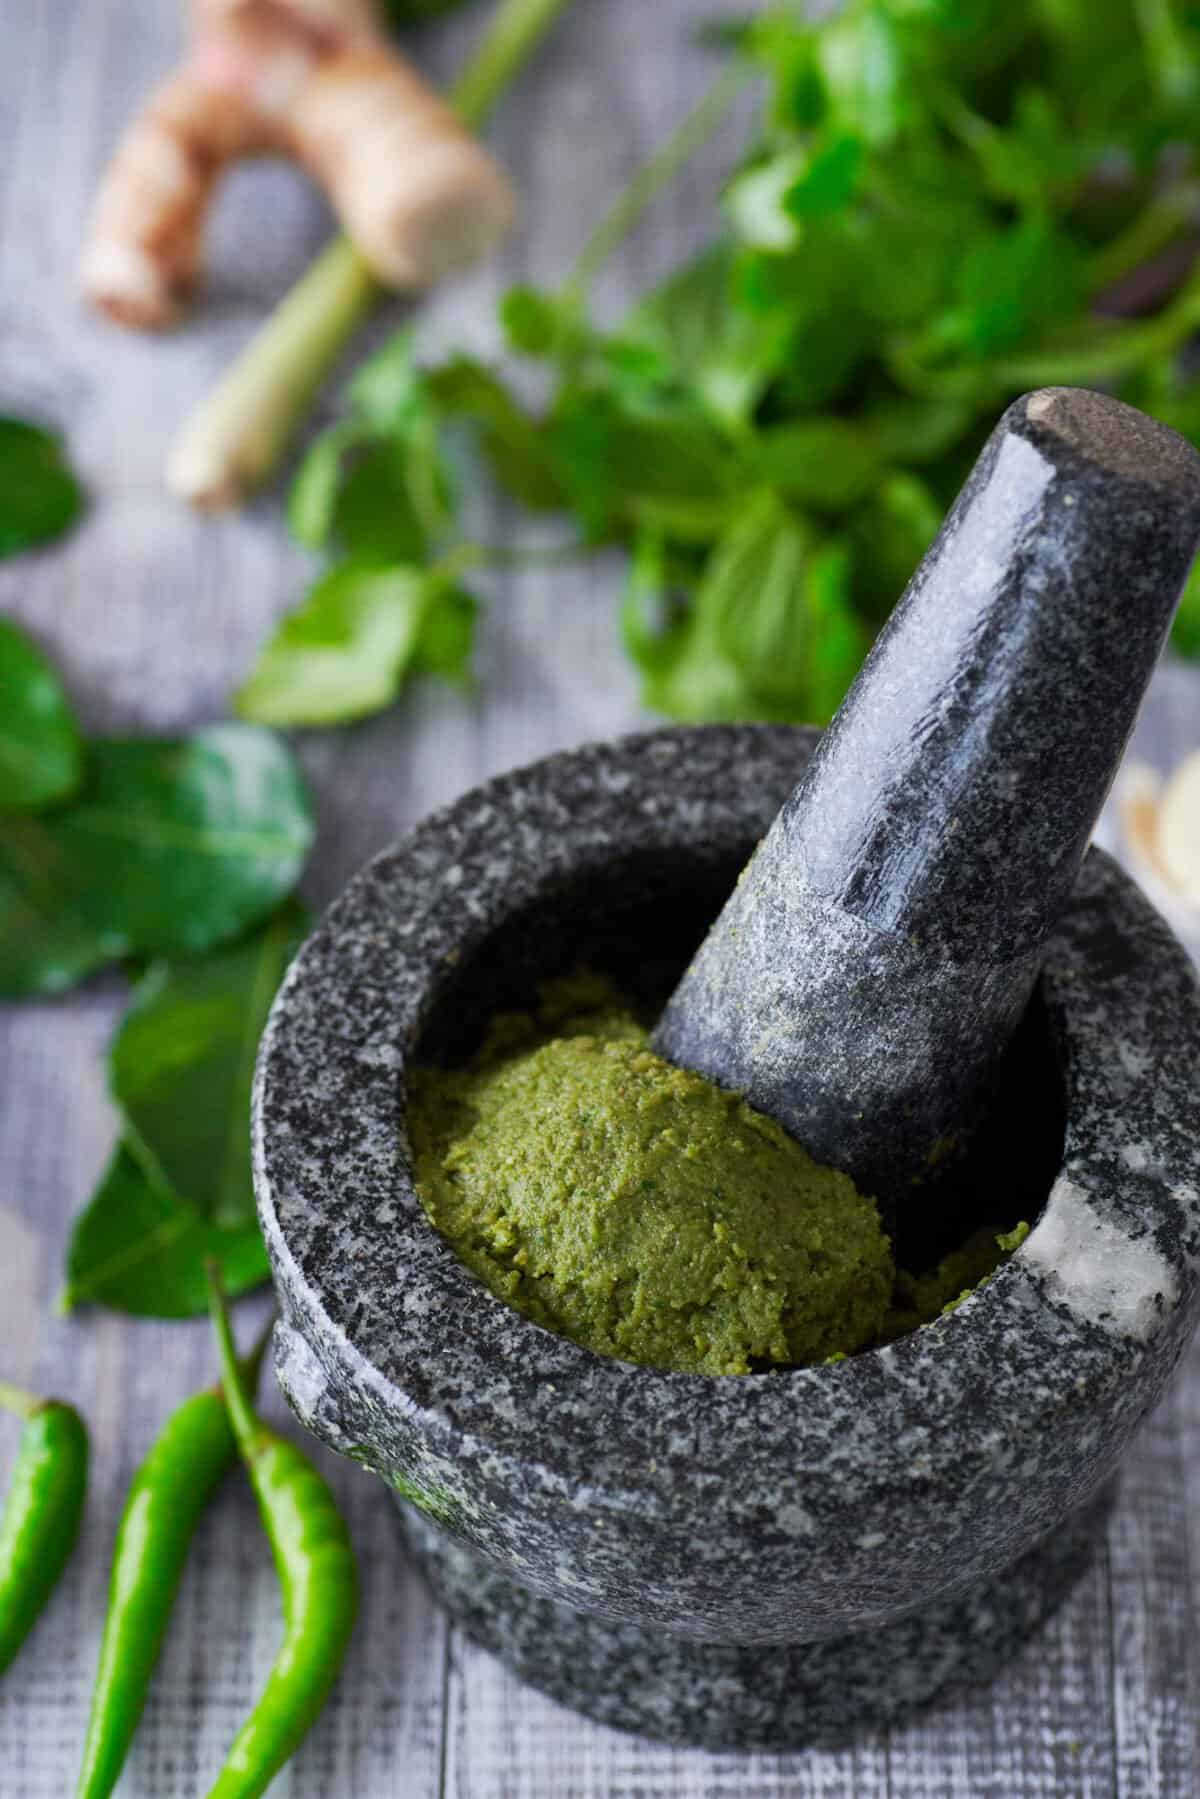 Loaded with Thai herbs and spices and a fiery kick from green chilies, this fragrant green curry paste is the base for a great curry. Best of all, it's plant-based so it's up to you whether you want to load it up with chicken or go vegan with tofu and eggplant.